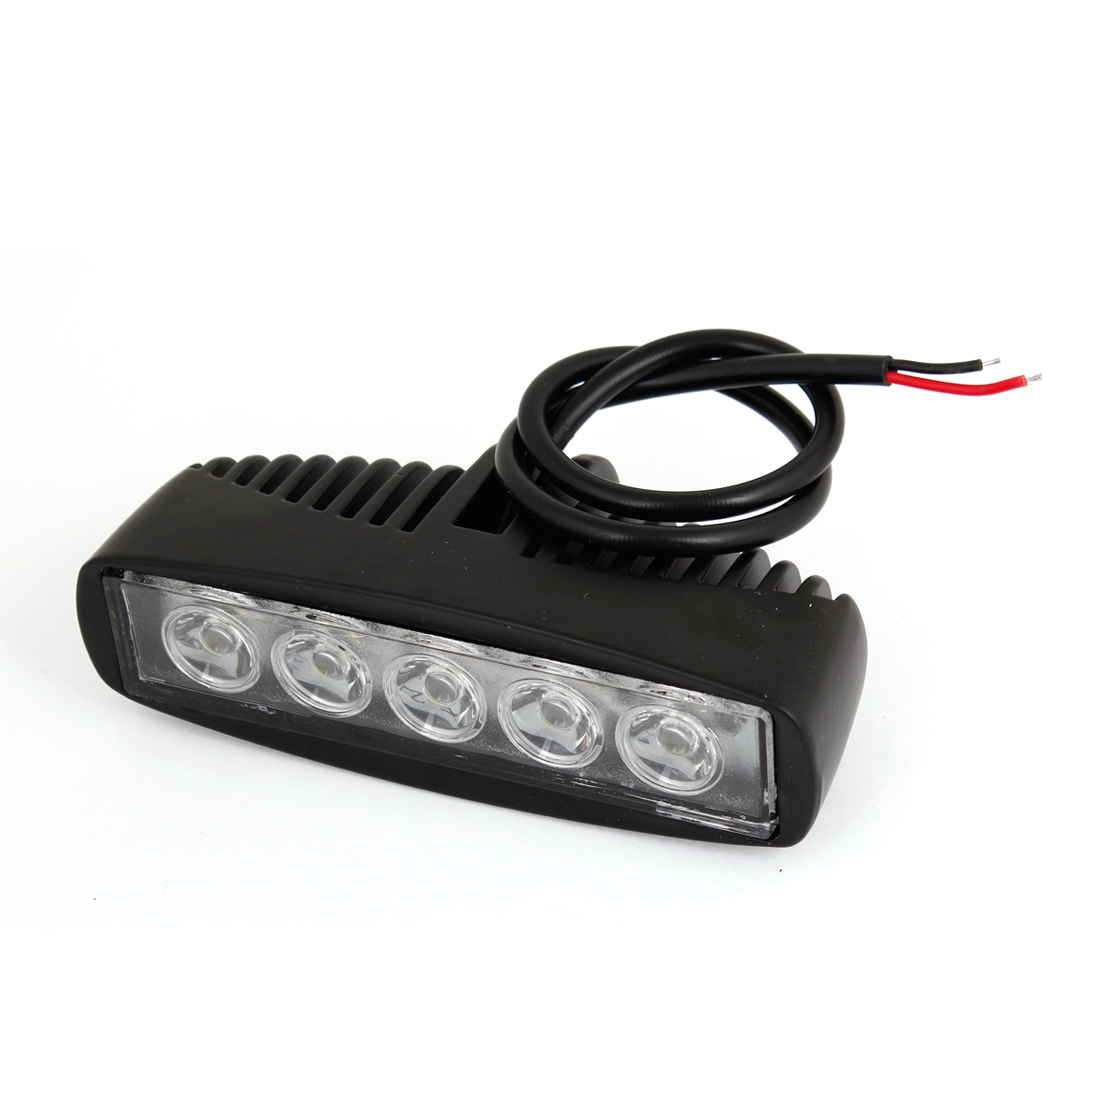 15W 5 LED Work Light Bar Fog Driving Lamp for Offroad ATV SUV DC12V 24V